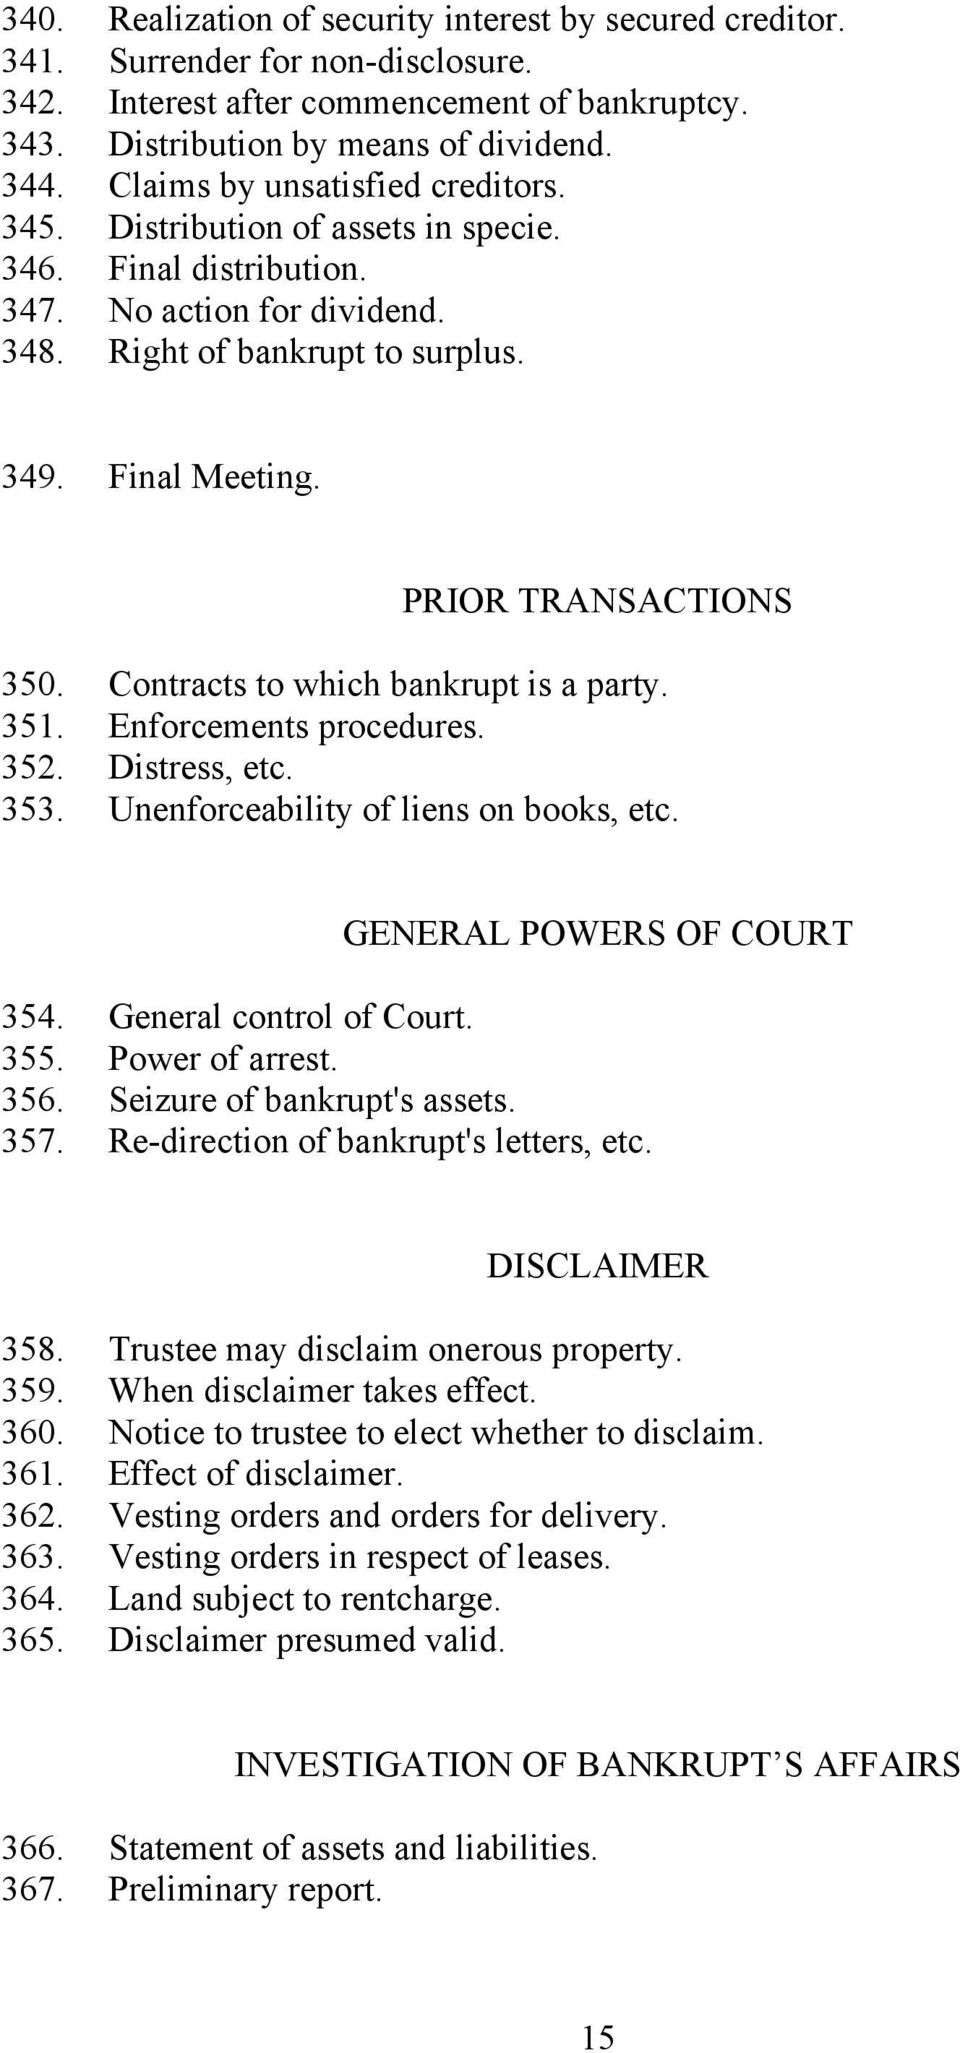 PRIOR TRANSACTIONS 350. Contracts to which bankrupt is a party. 351. Enforcements procedures. 352. Distress, etc. 353. Unenforceability of liens on books, etc. GENERAL POWERS OF COURT 354.